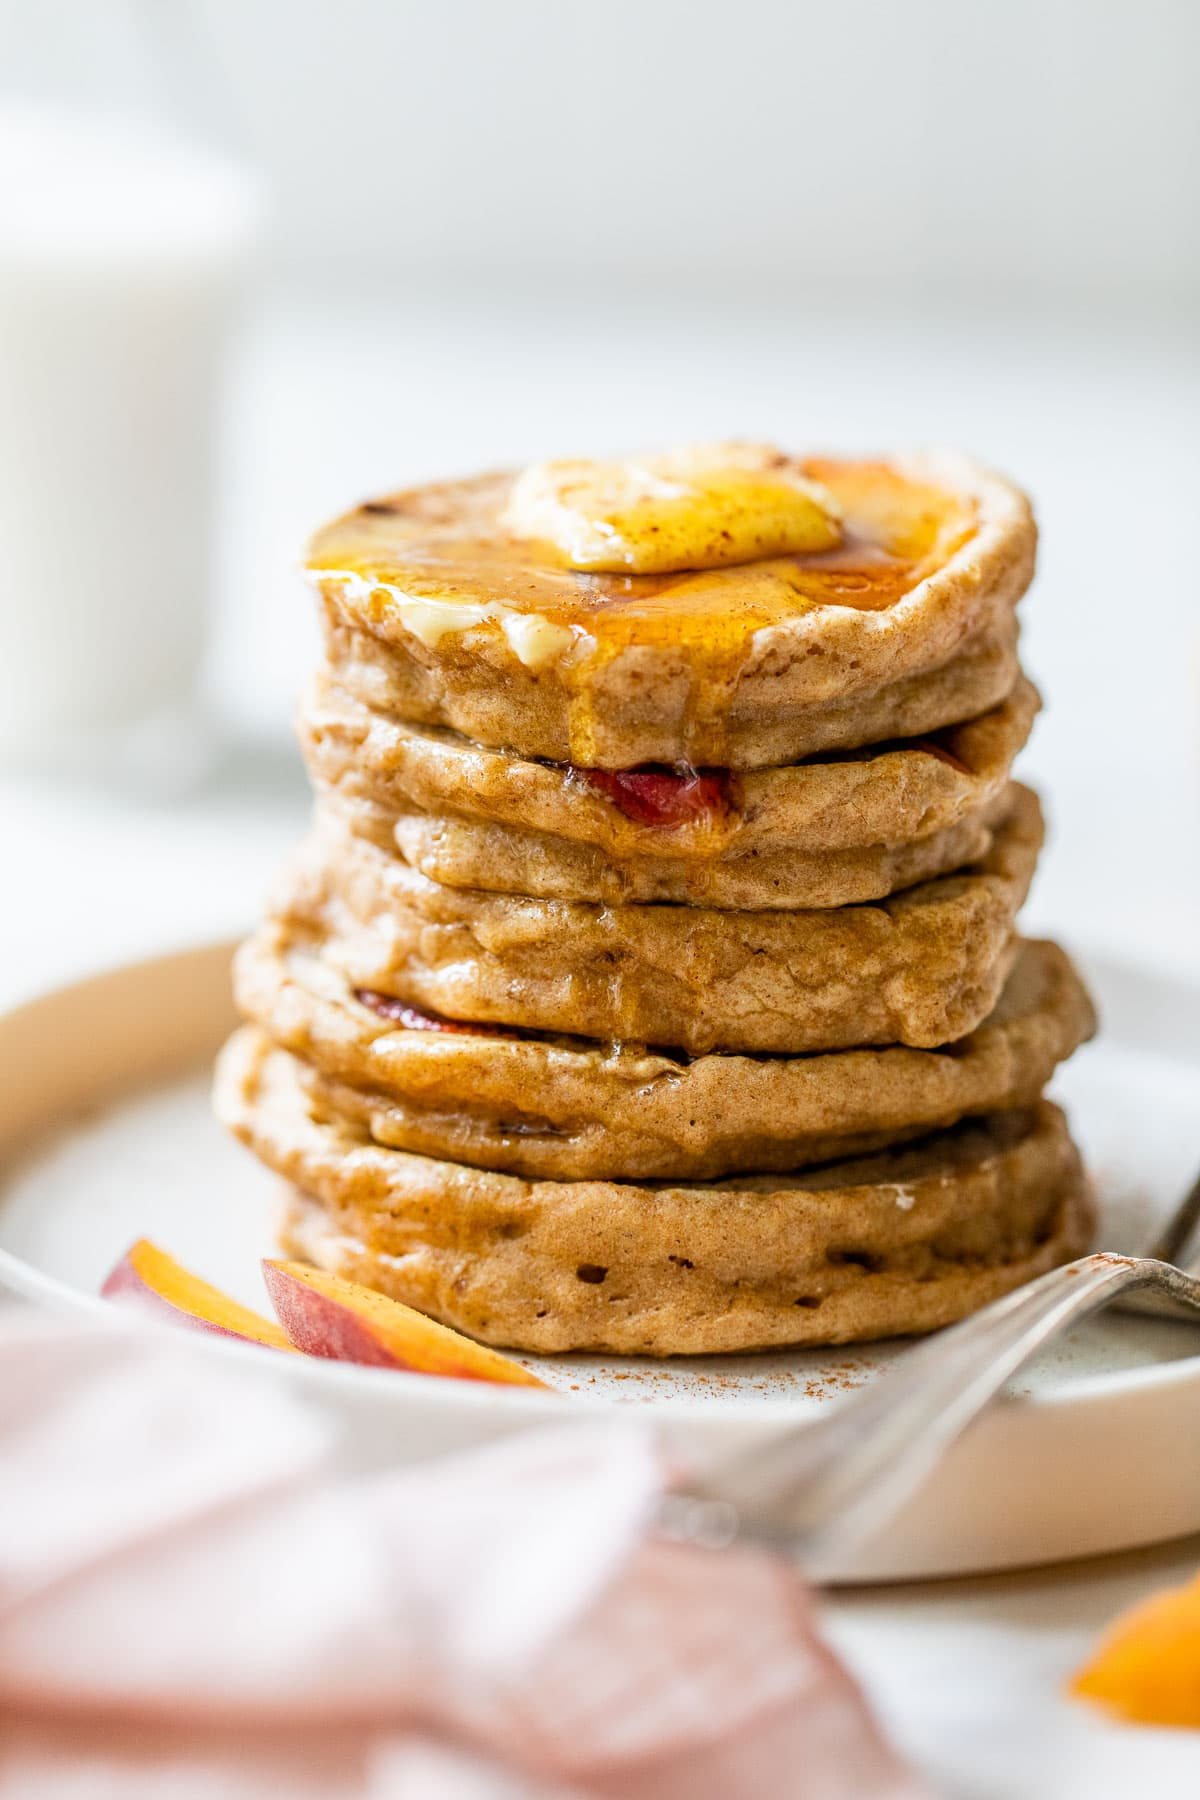 Peaches and Cream Pancakes made with Bob's Red Mill 10 Grain Pancake Mix